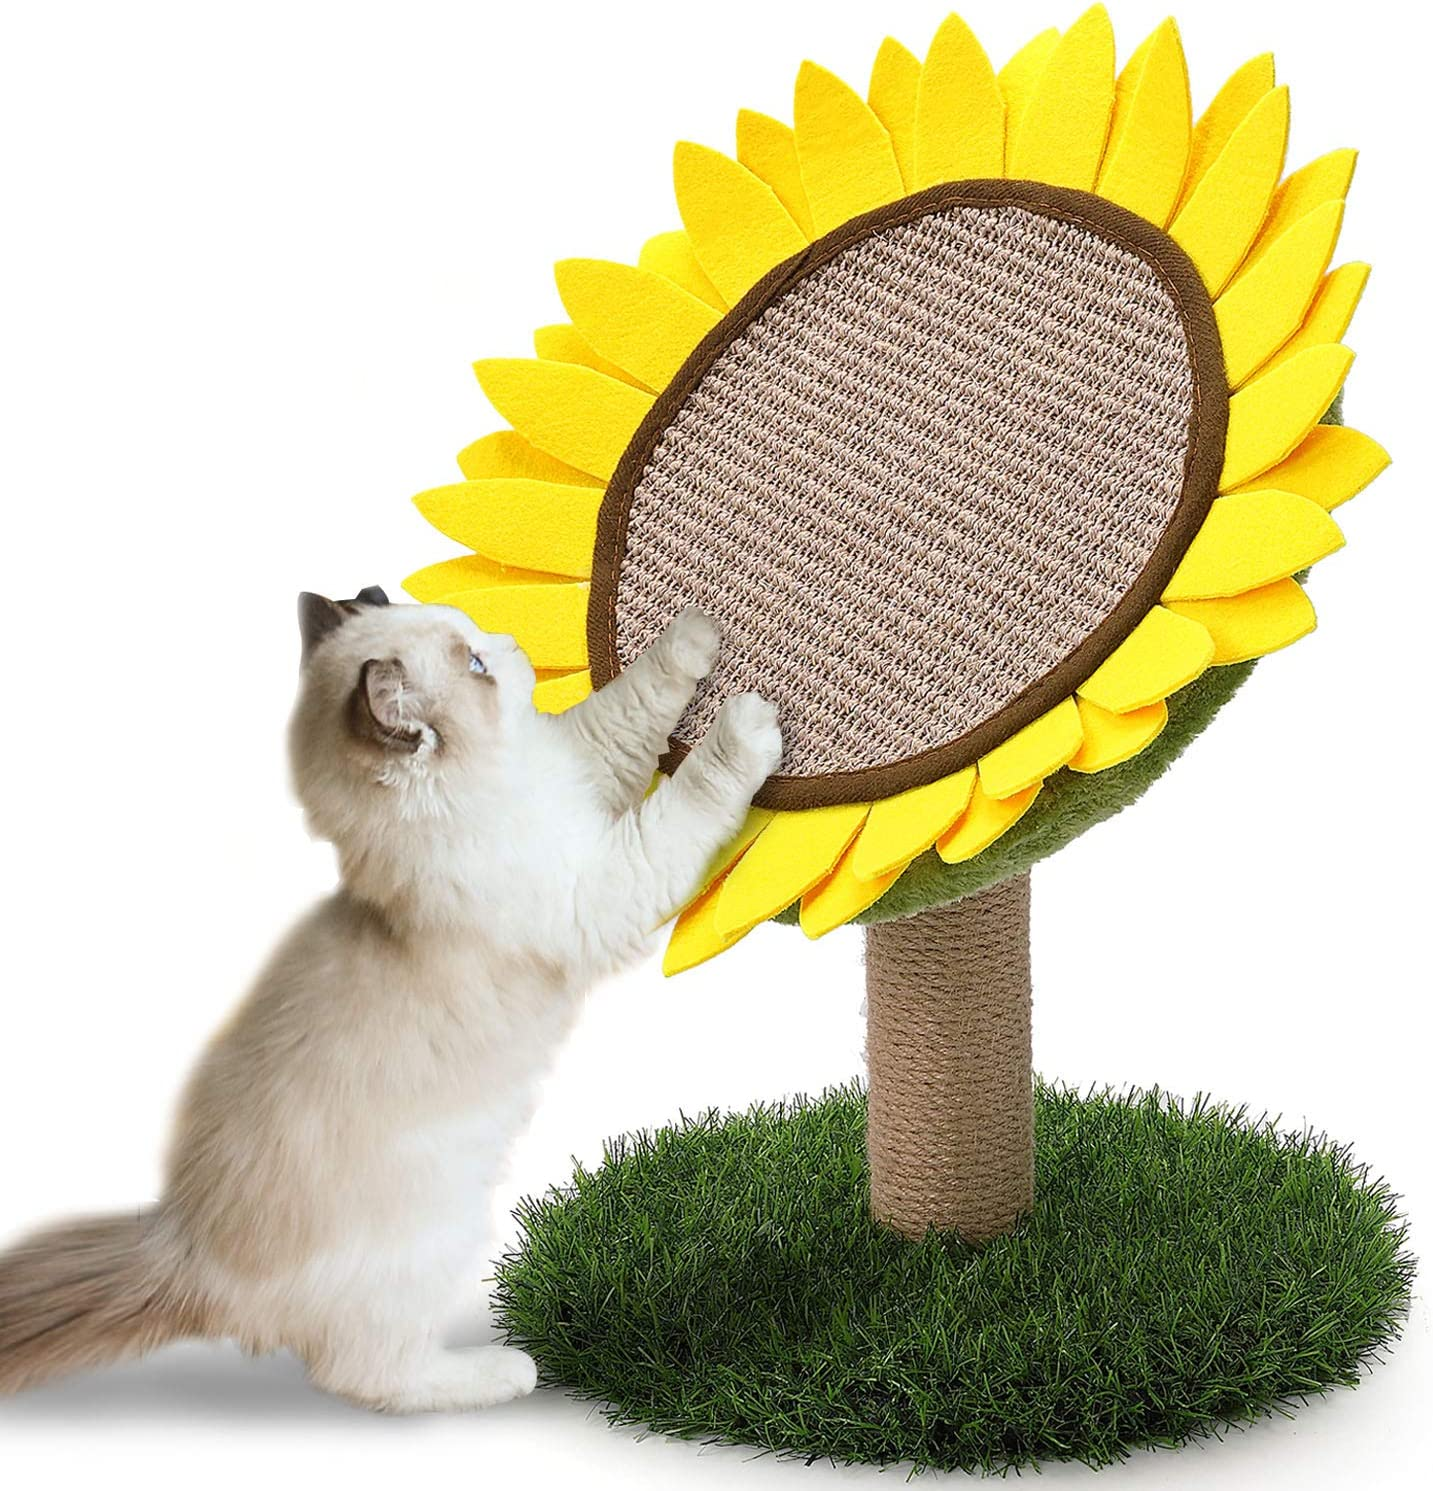 Cat Scratching Post, Sunflower Claw Scratching Post for Kitty, Natural Sisal Scratcher Board, Cute Furniture Interactive Activity Pad Toys for Kitten & Cat, 18x12 Inch